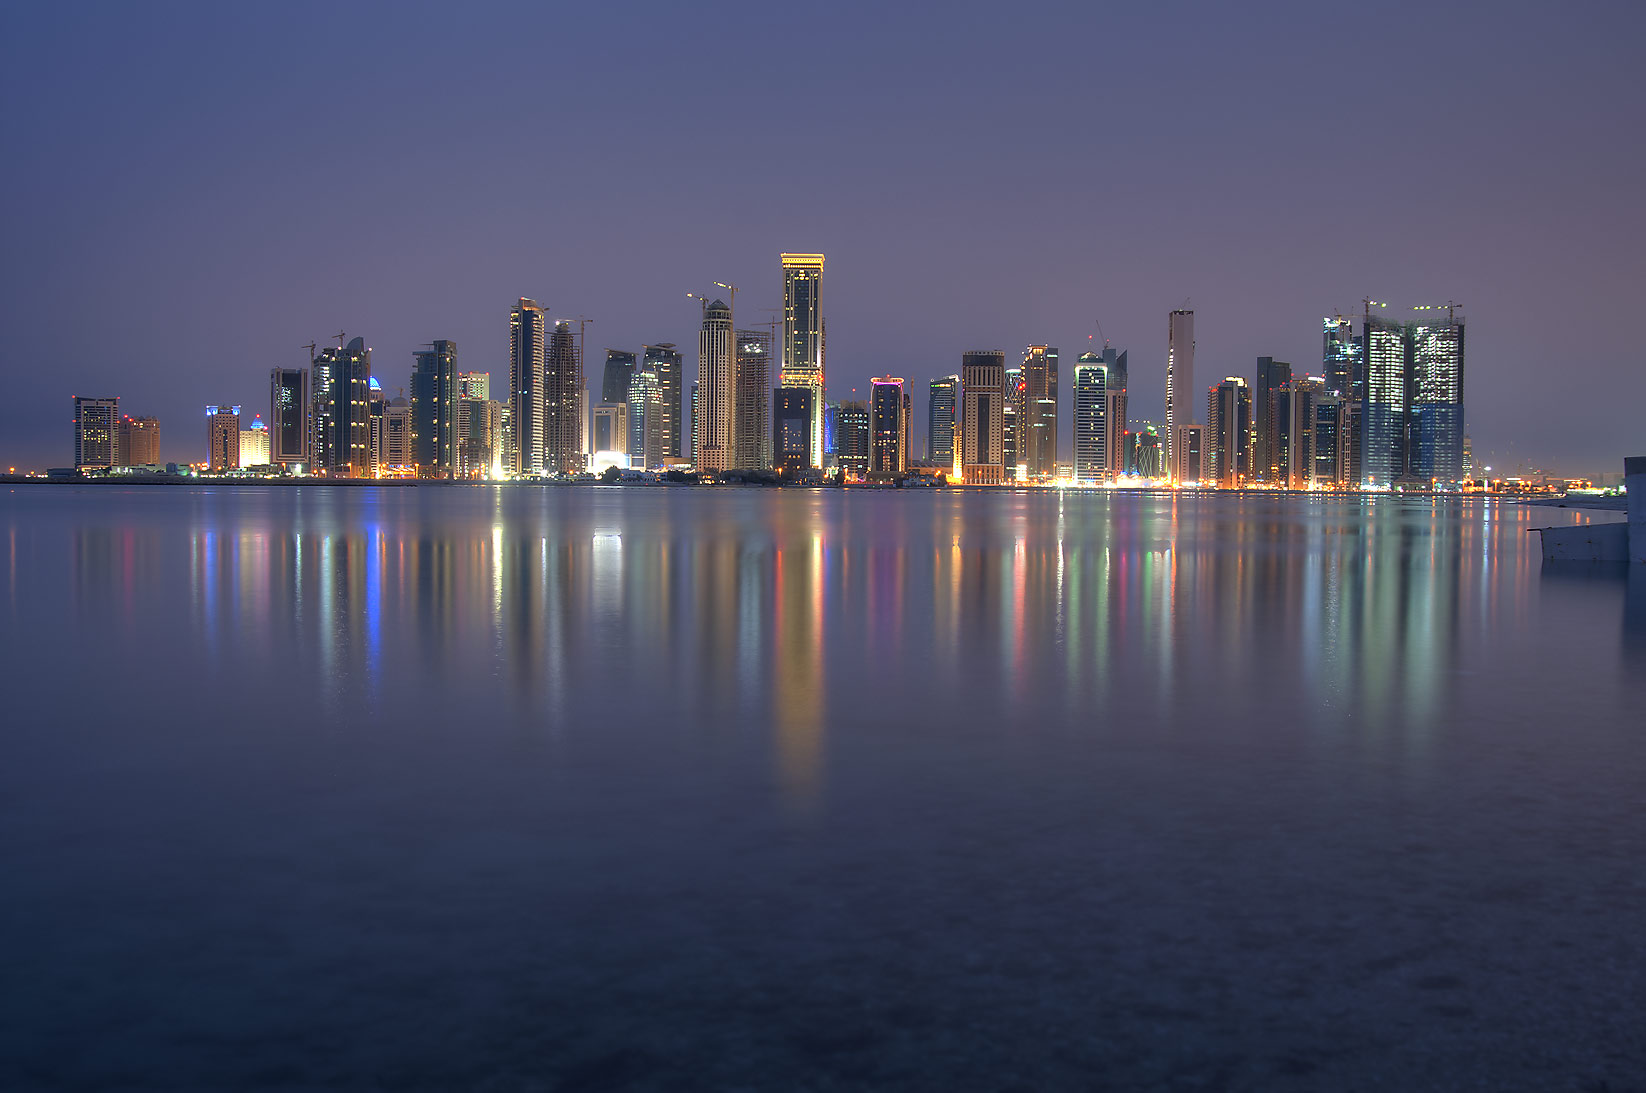 Northern area of West Bay from a beach south of...Hotel at morning dusk. Doha, Qatar